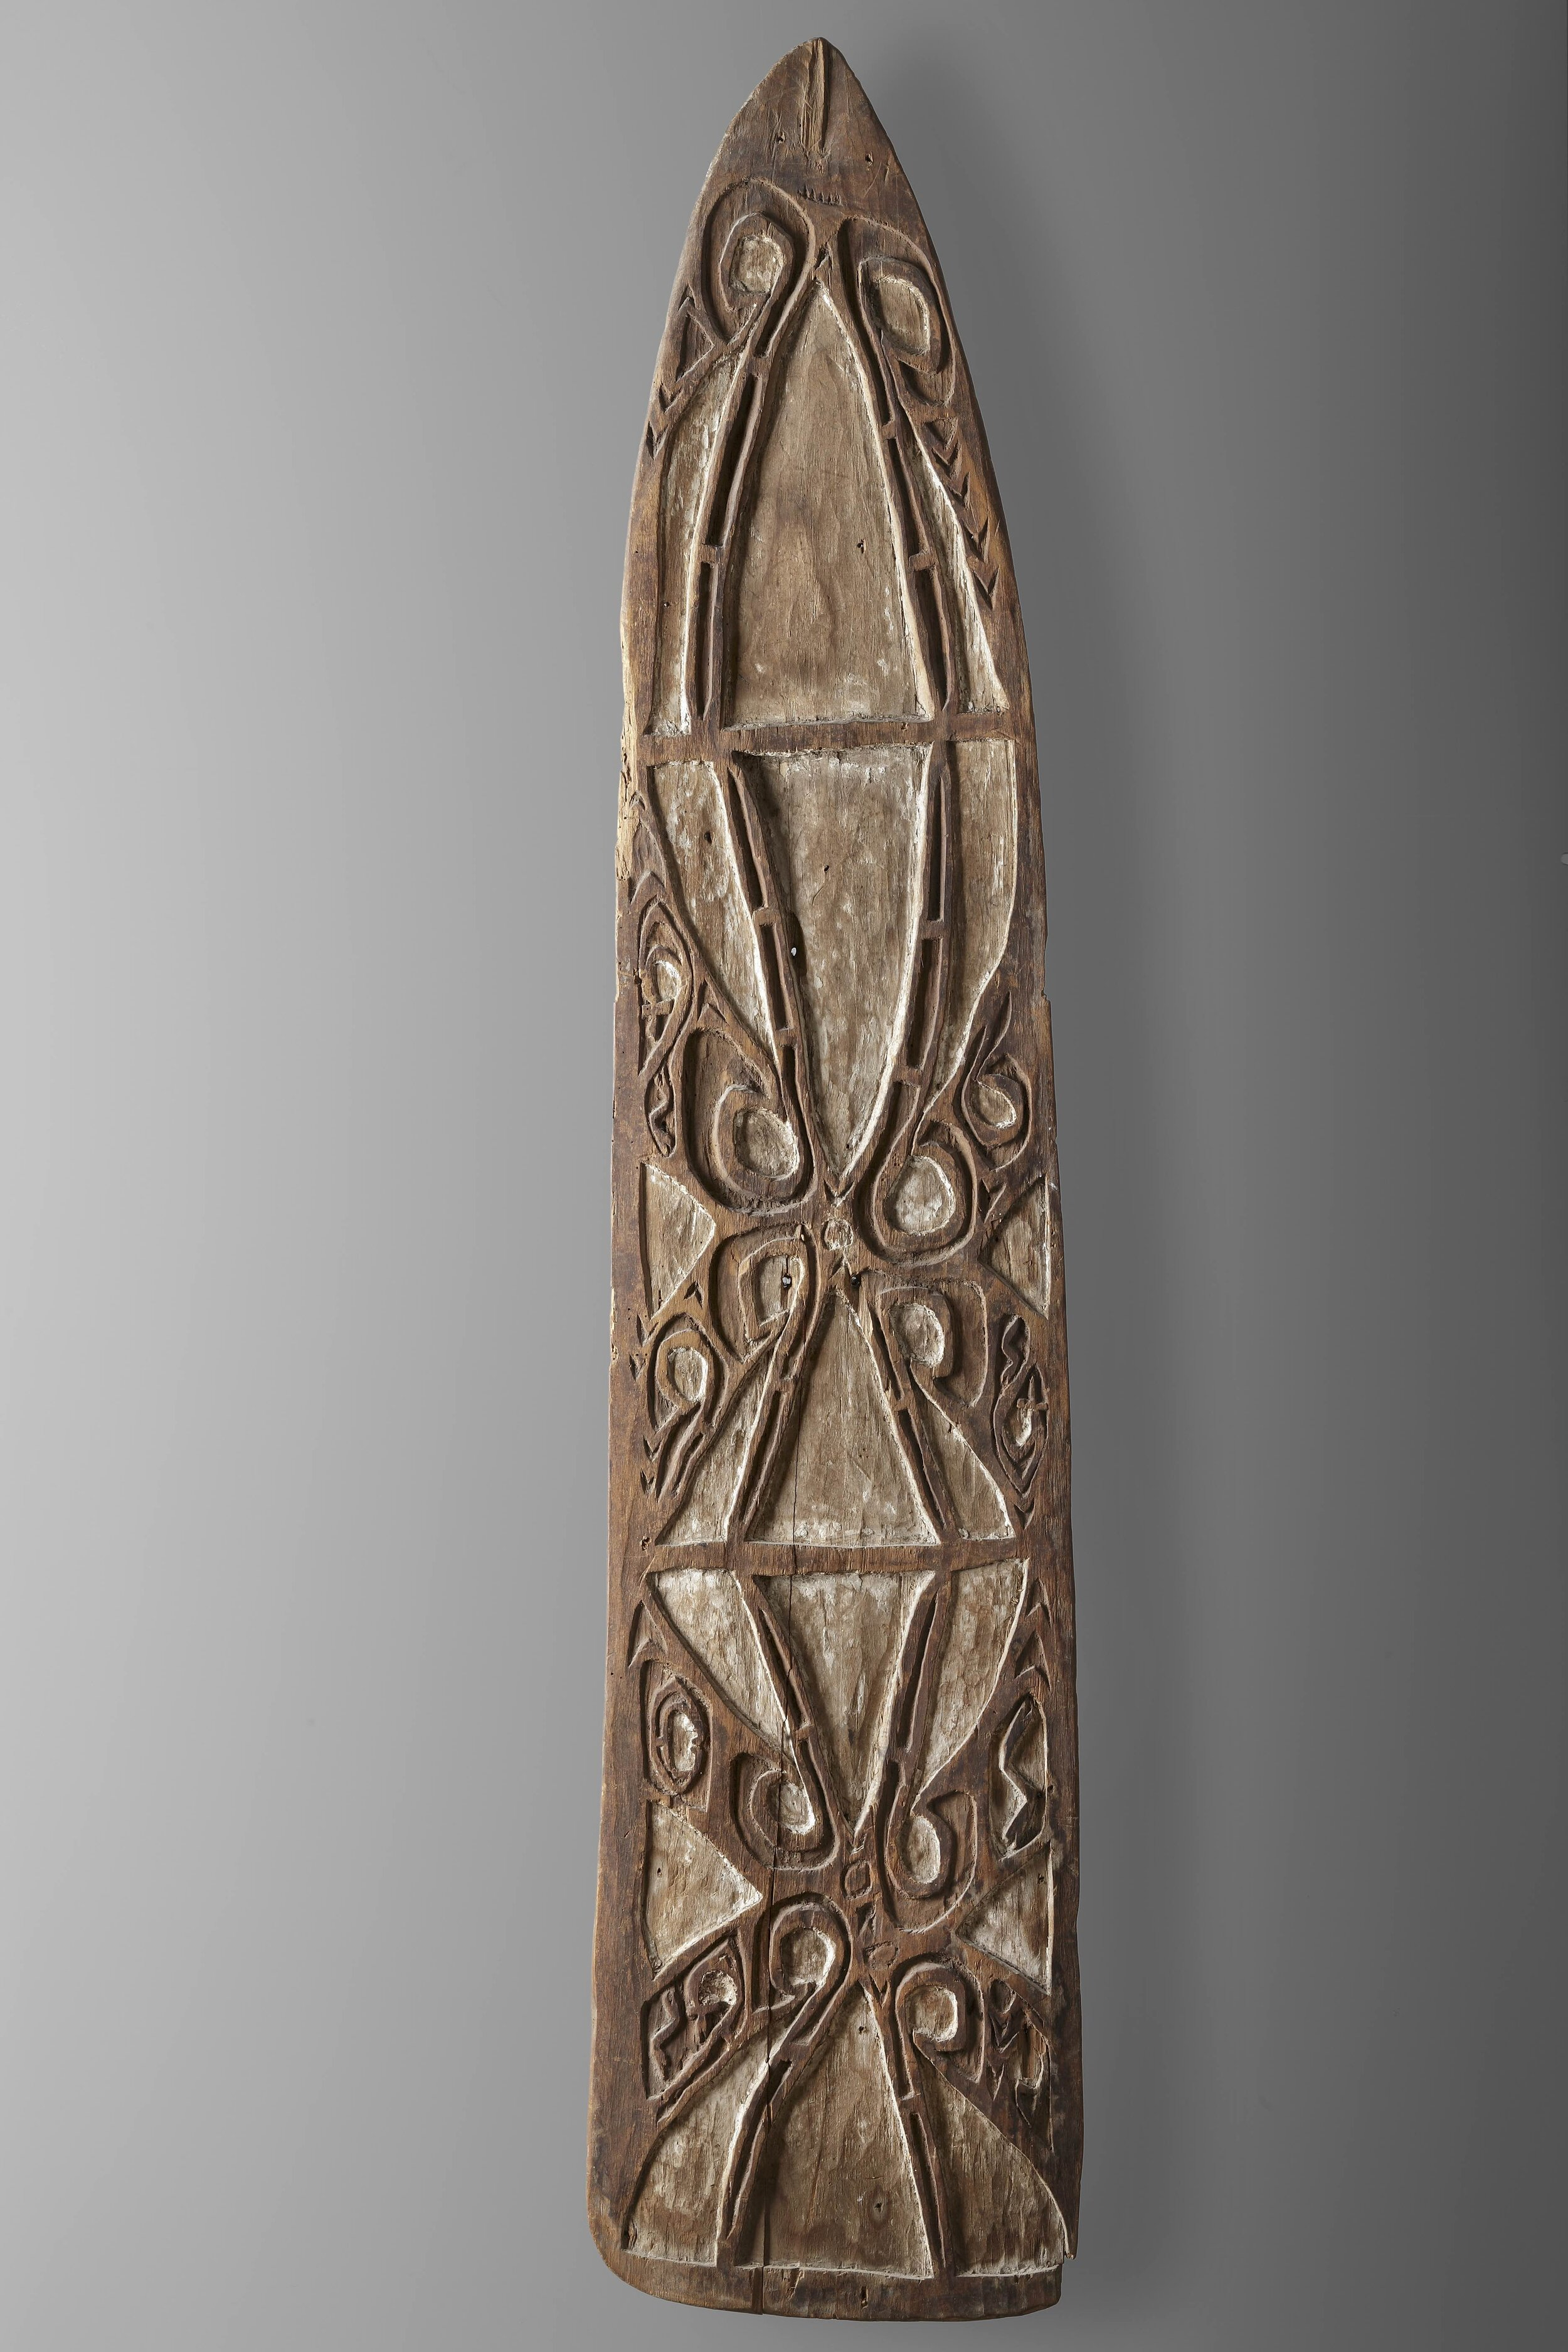 """Shield no. 20, accompanied by a document typed by the collector indicating: """"Shield with rhomboid decorations. Length: 133 cm. Greatest width: 28.5 cm. Whitewash with dark brown. Purchased from the MSC mission house in 1950. Collected by Father Viegen ... Noordwest River?"""" Private collection. Photo: Jan van Esch"""